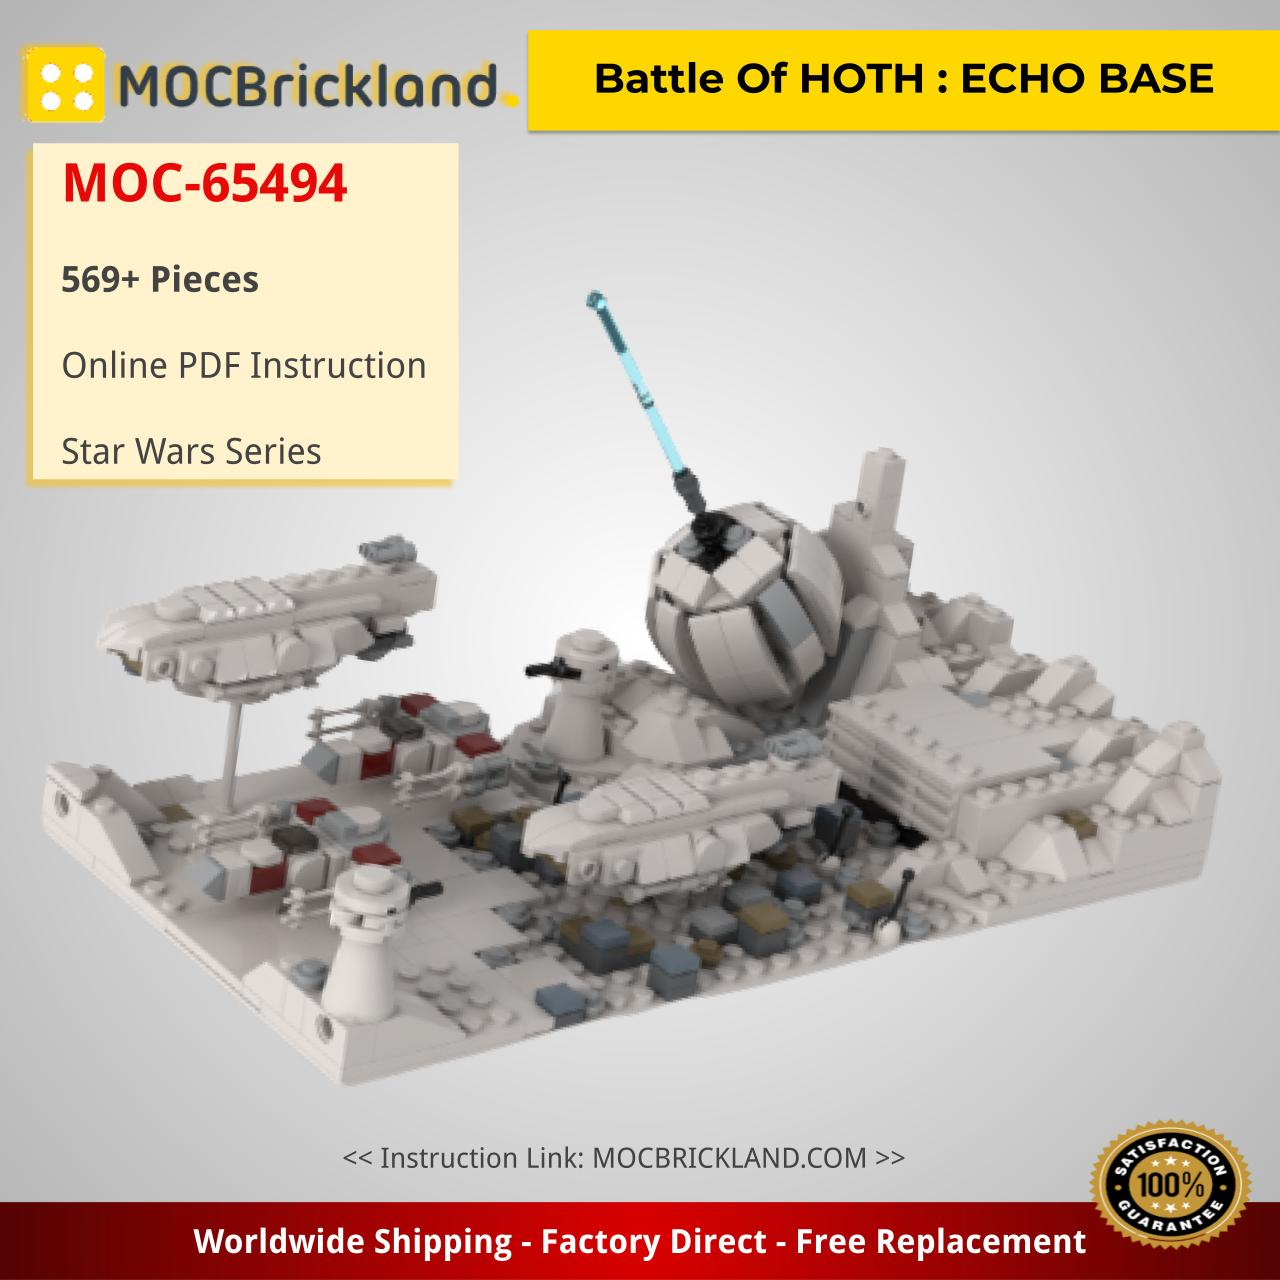 Battle Of HOTH : ECHO BASE MOC-65494 by jellco with 569 Pieces